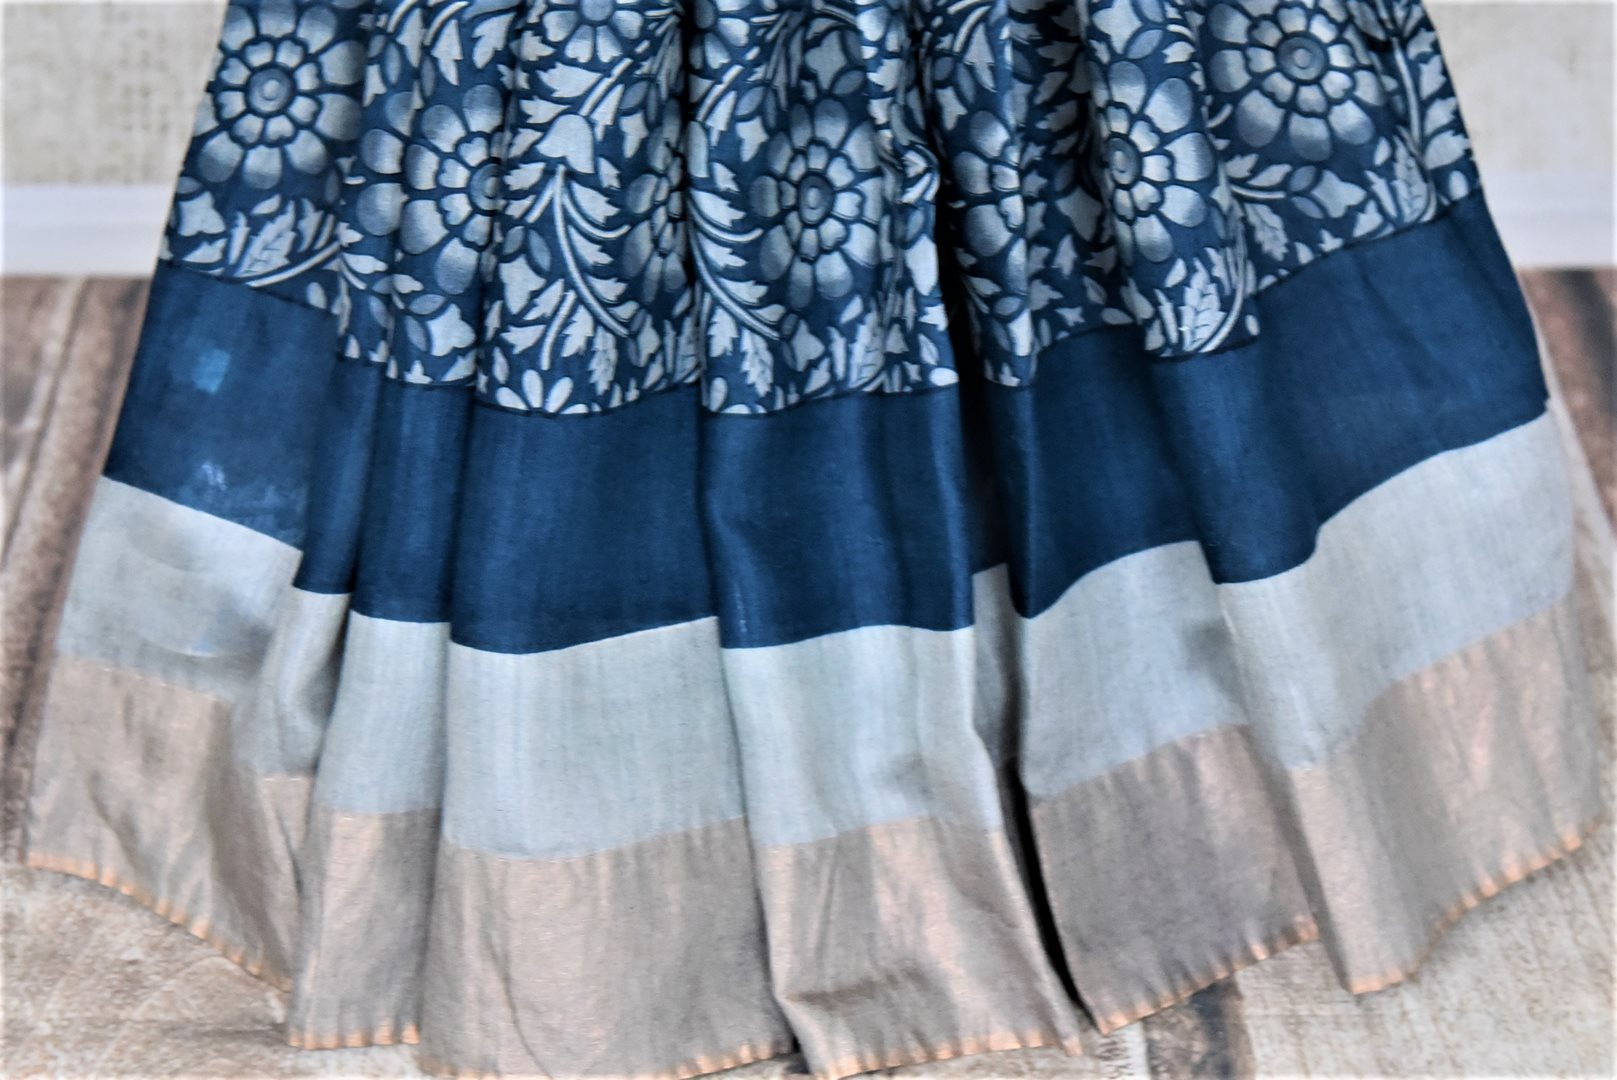 Buy dark blue floral print tussar silk sari online in USA with light zari border. Make a beautiful appearance on special occasions with exquisite Indian designer saris, pure silk sarees from Pure Elegance Indian fashion store in USA.-pleats